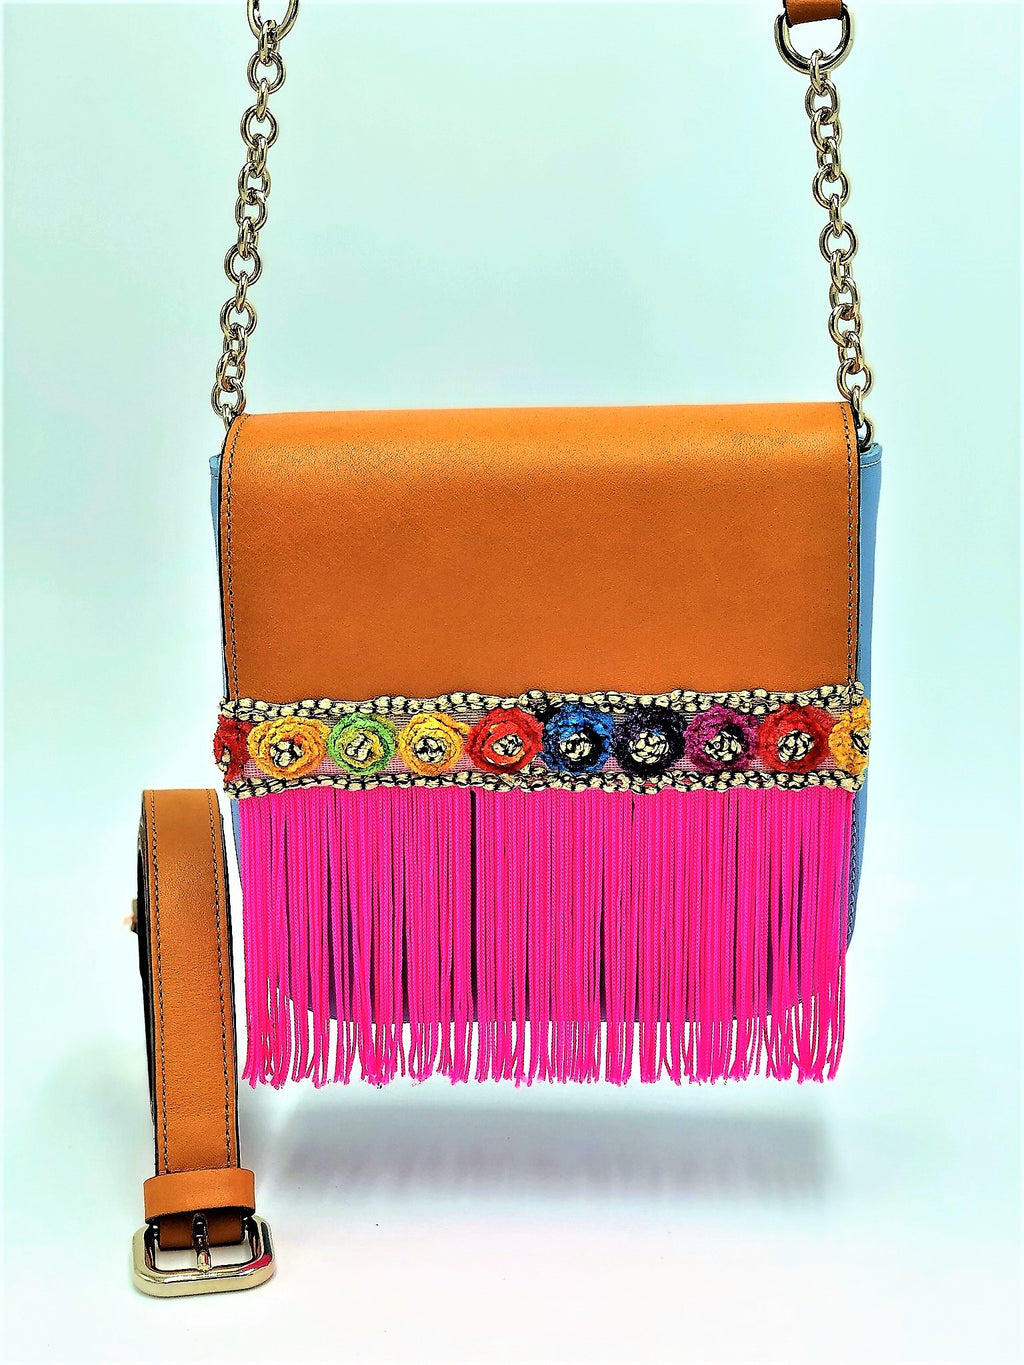 Orange and blue leather belt bag with neon pink fringes